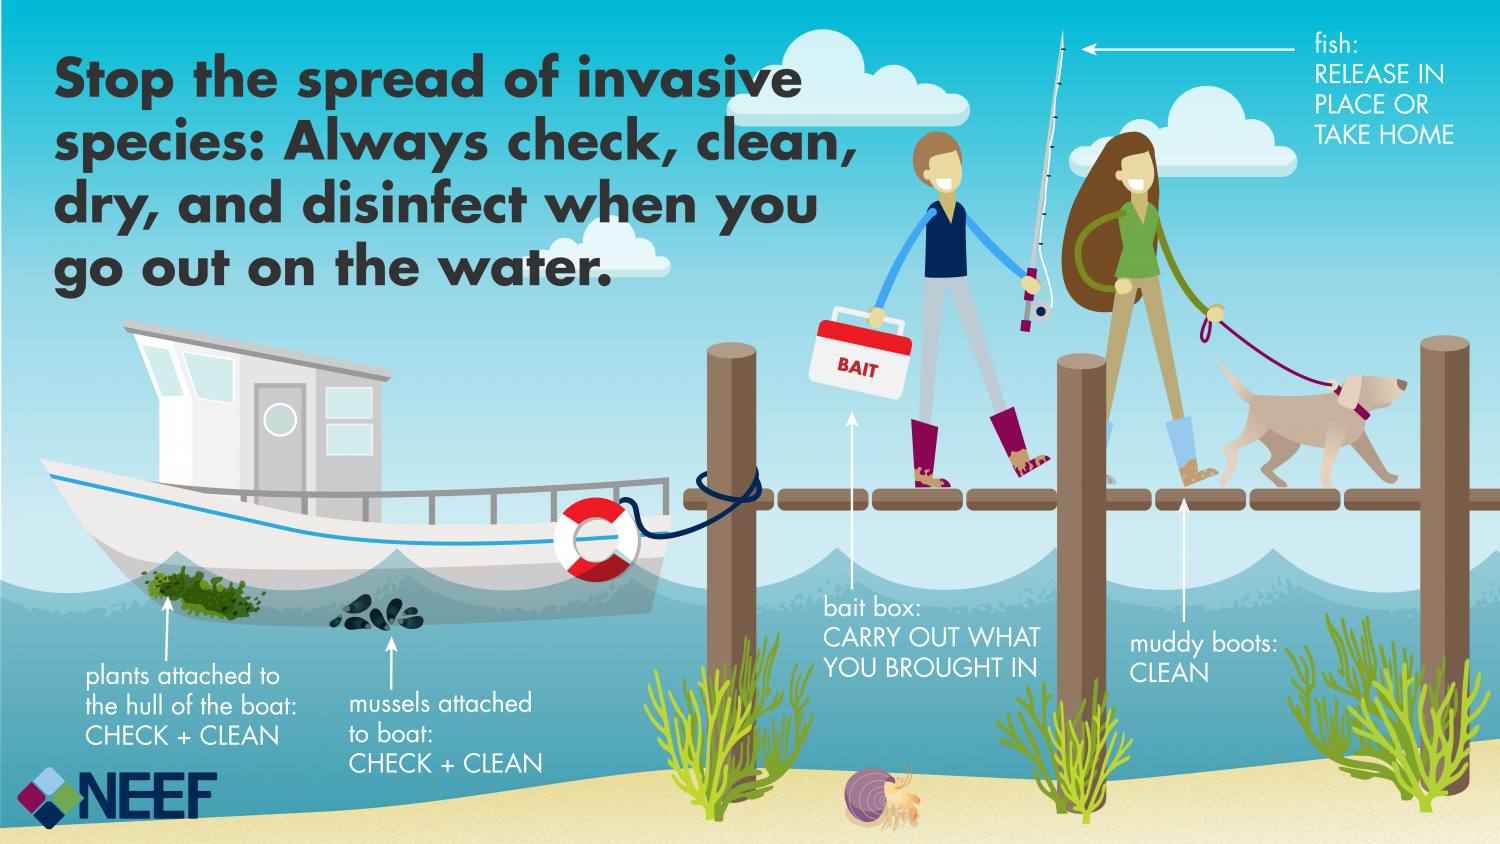 Infographic of two people and a dog exiting a boat, holding fishing gear. Text: Stop the spread of invasive species; Always check, clean, dry, and disinfect when you go out on the water.